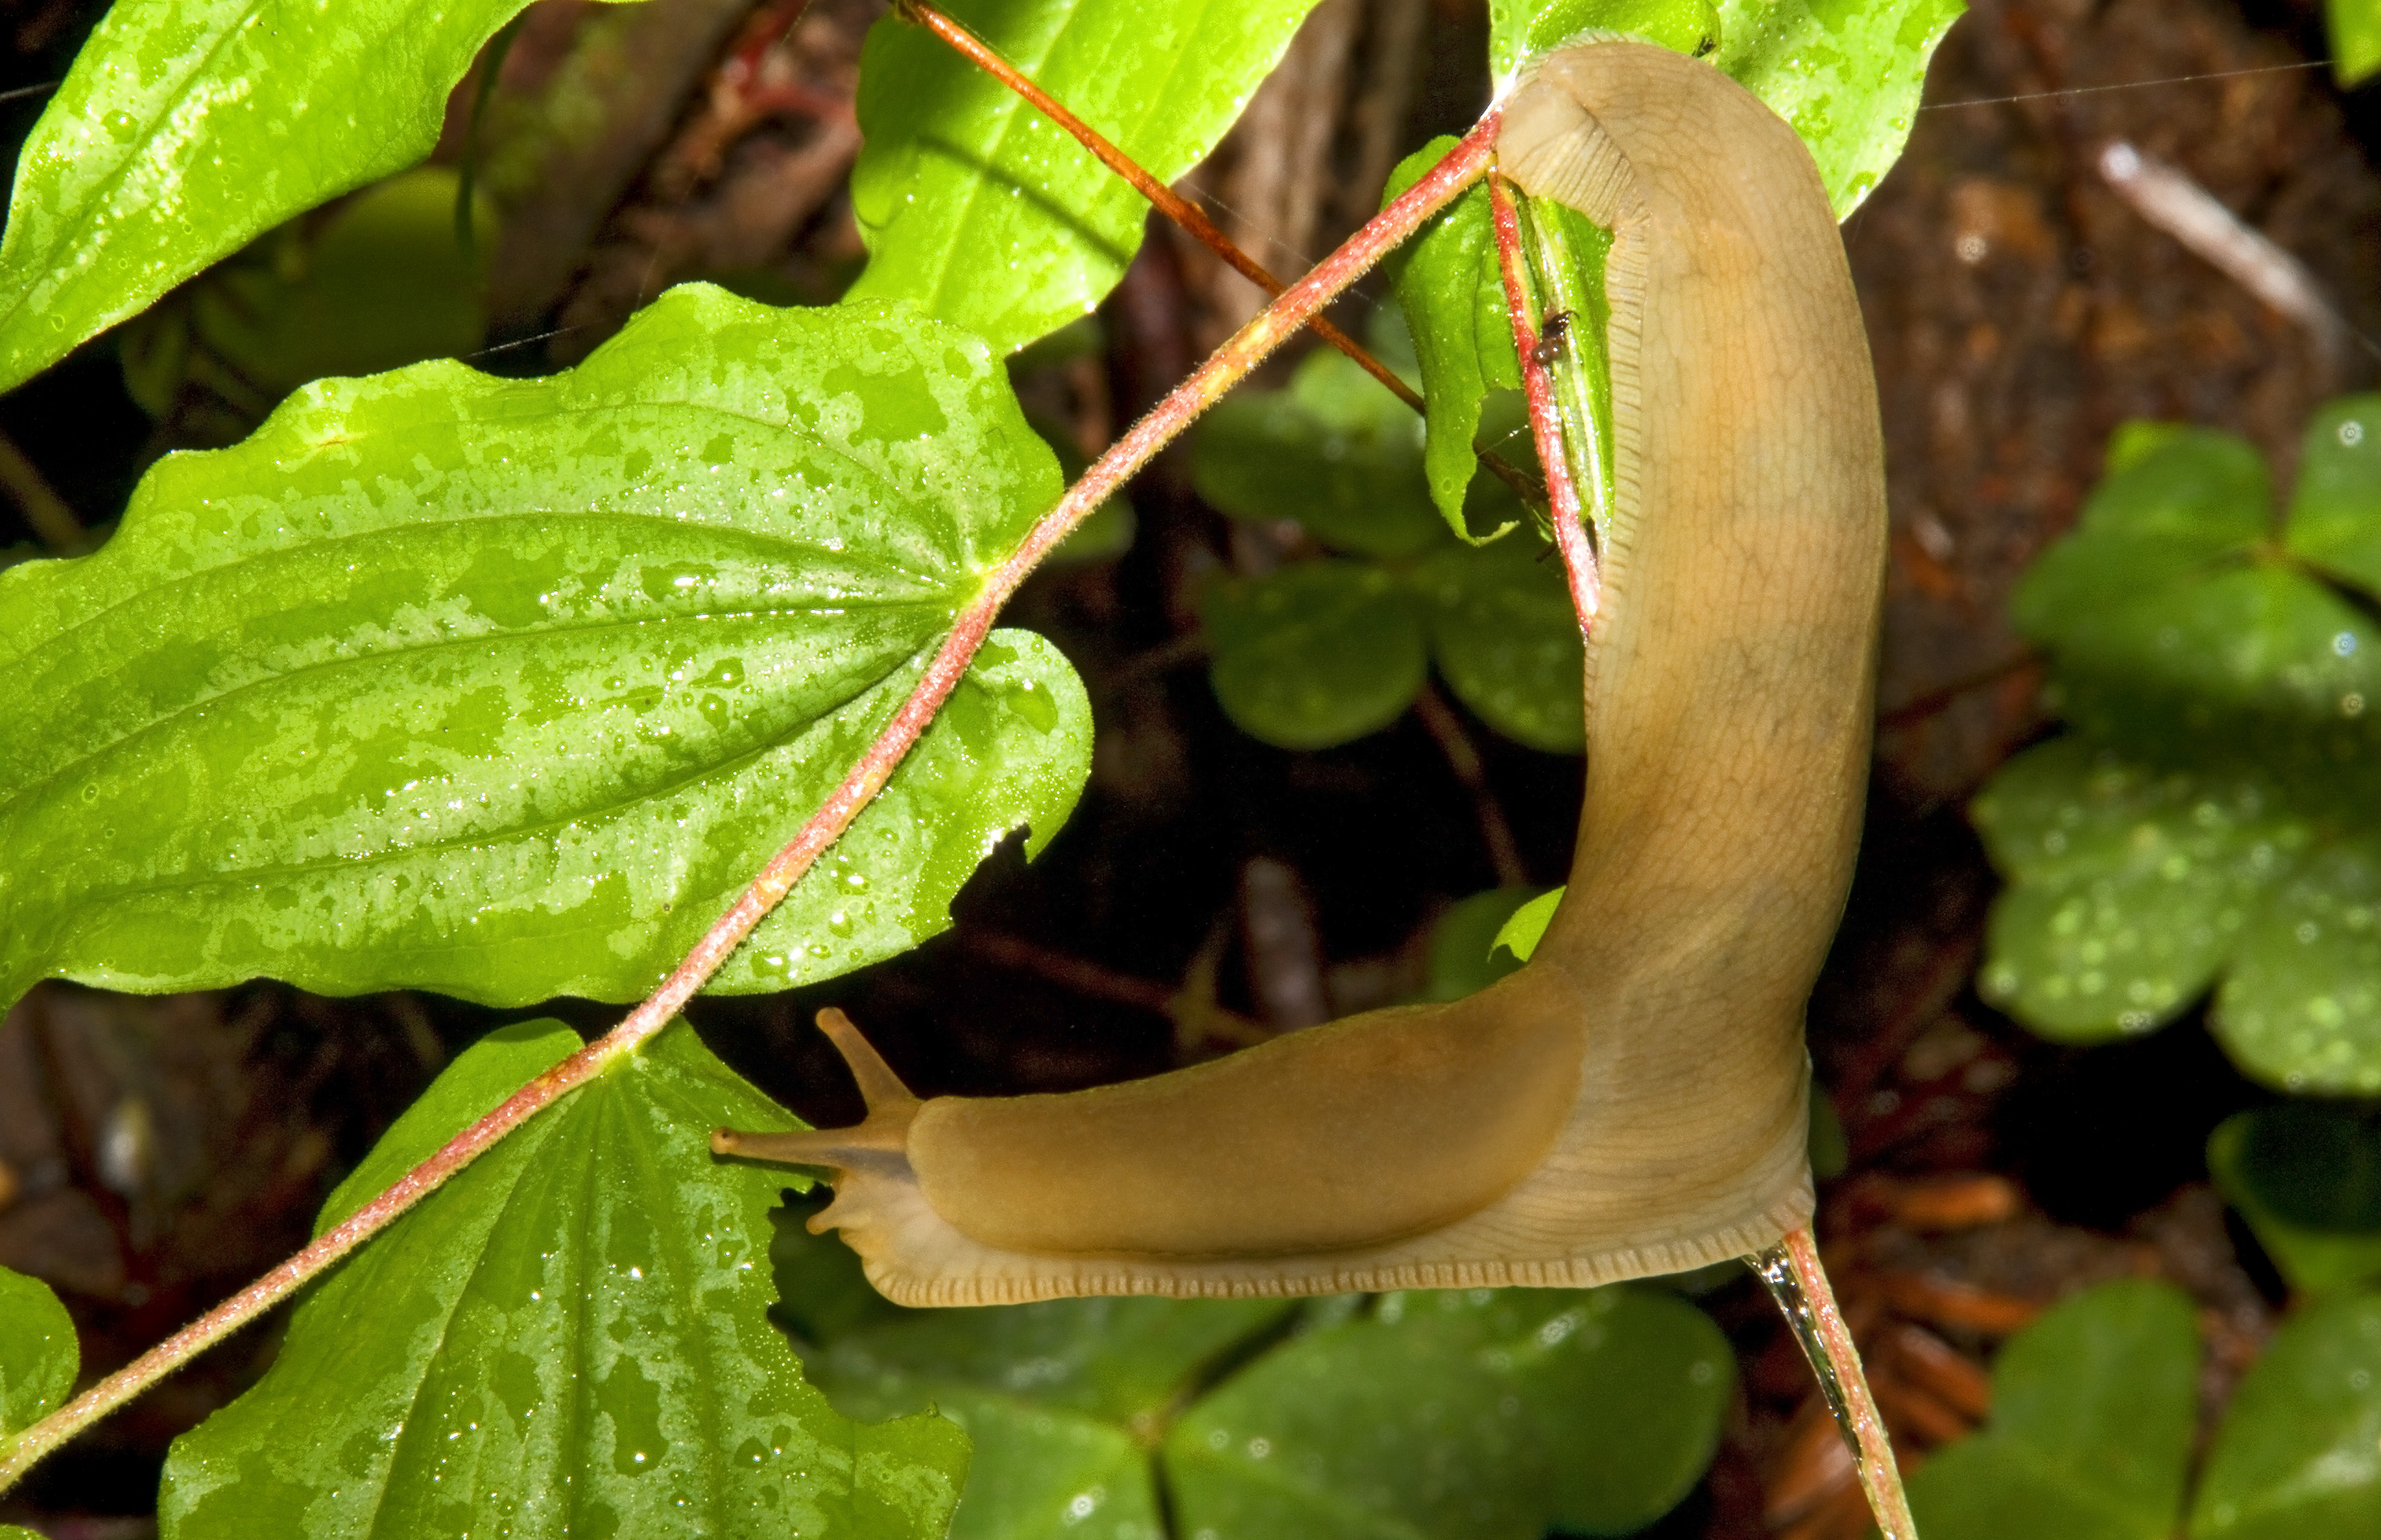 Banana Slug_MG_1721